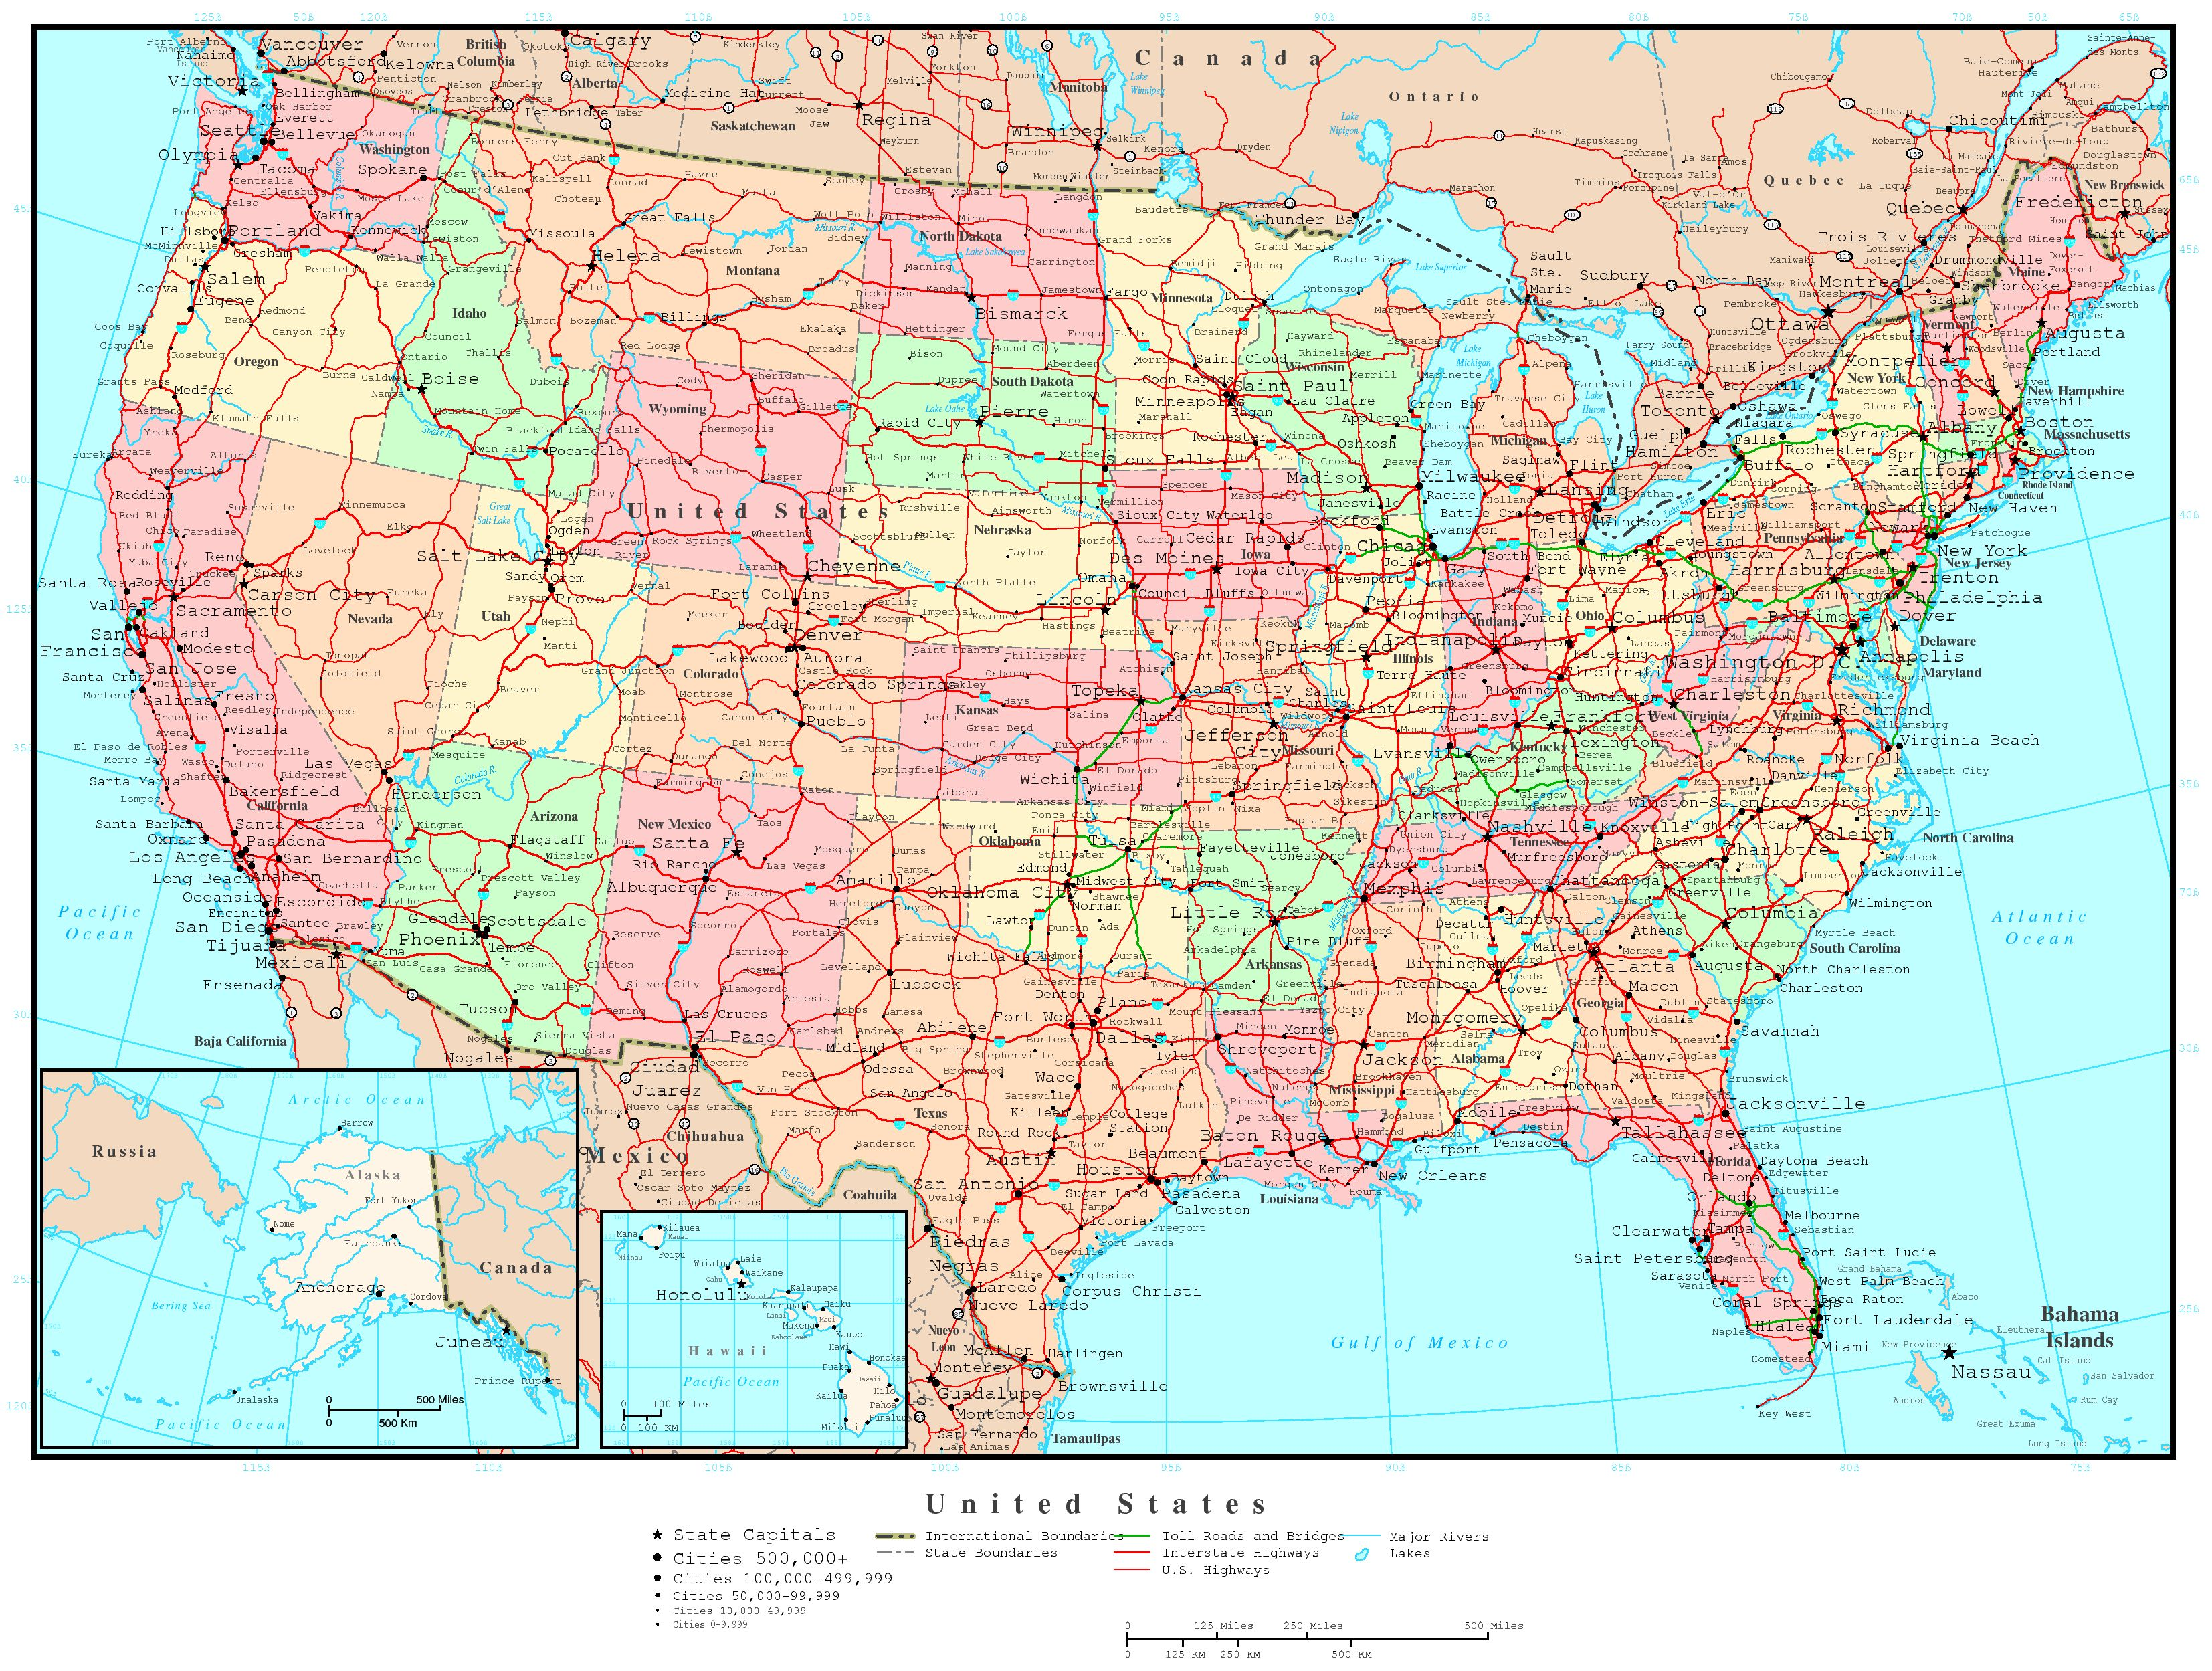 United States Political Map - Usa map with state